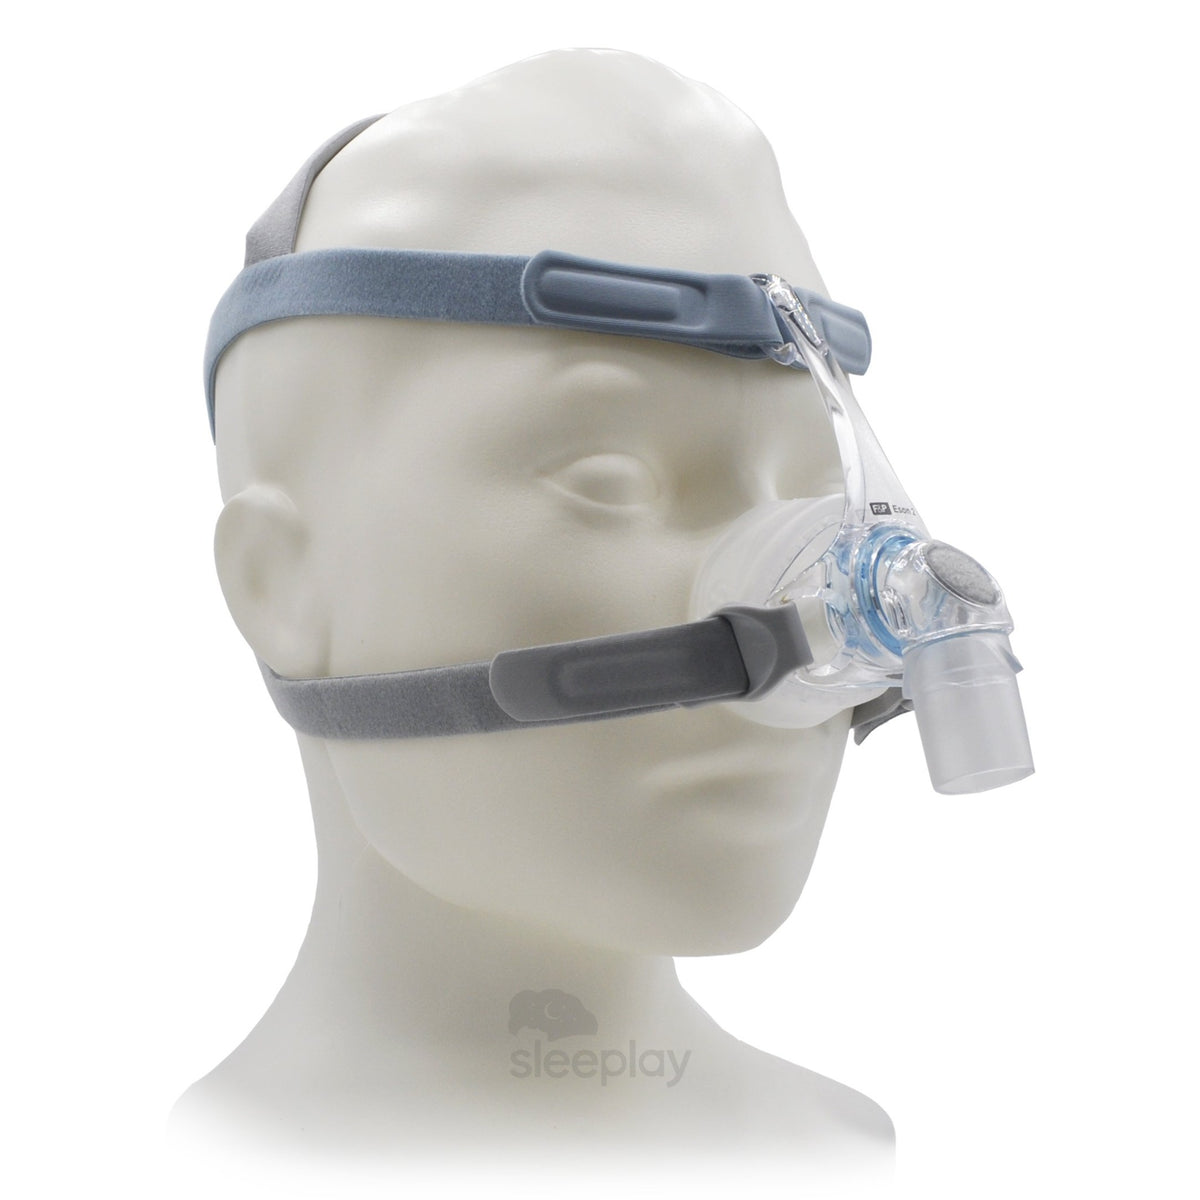 Eson 2 Nasal Mask On Mannequin.